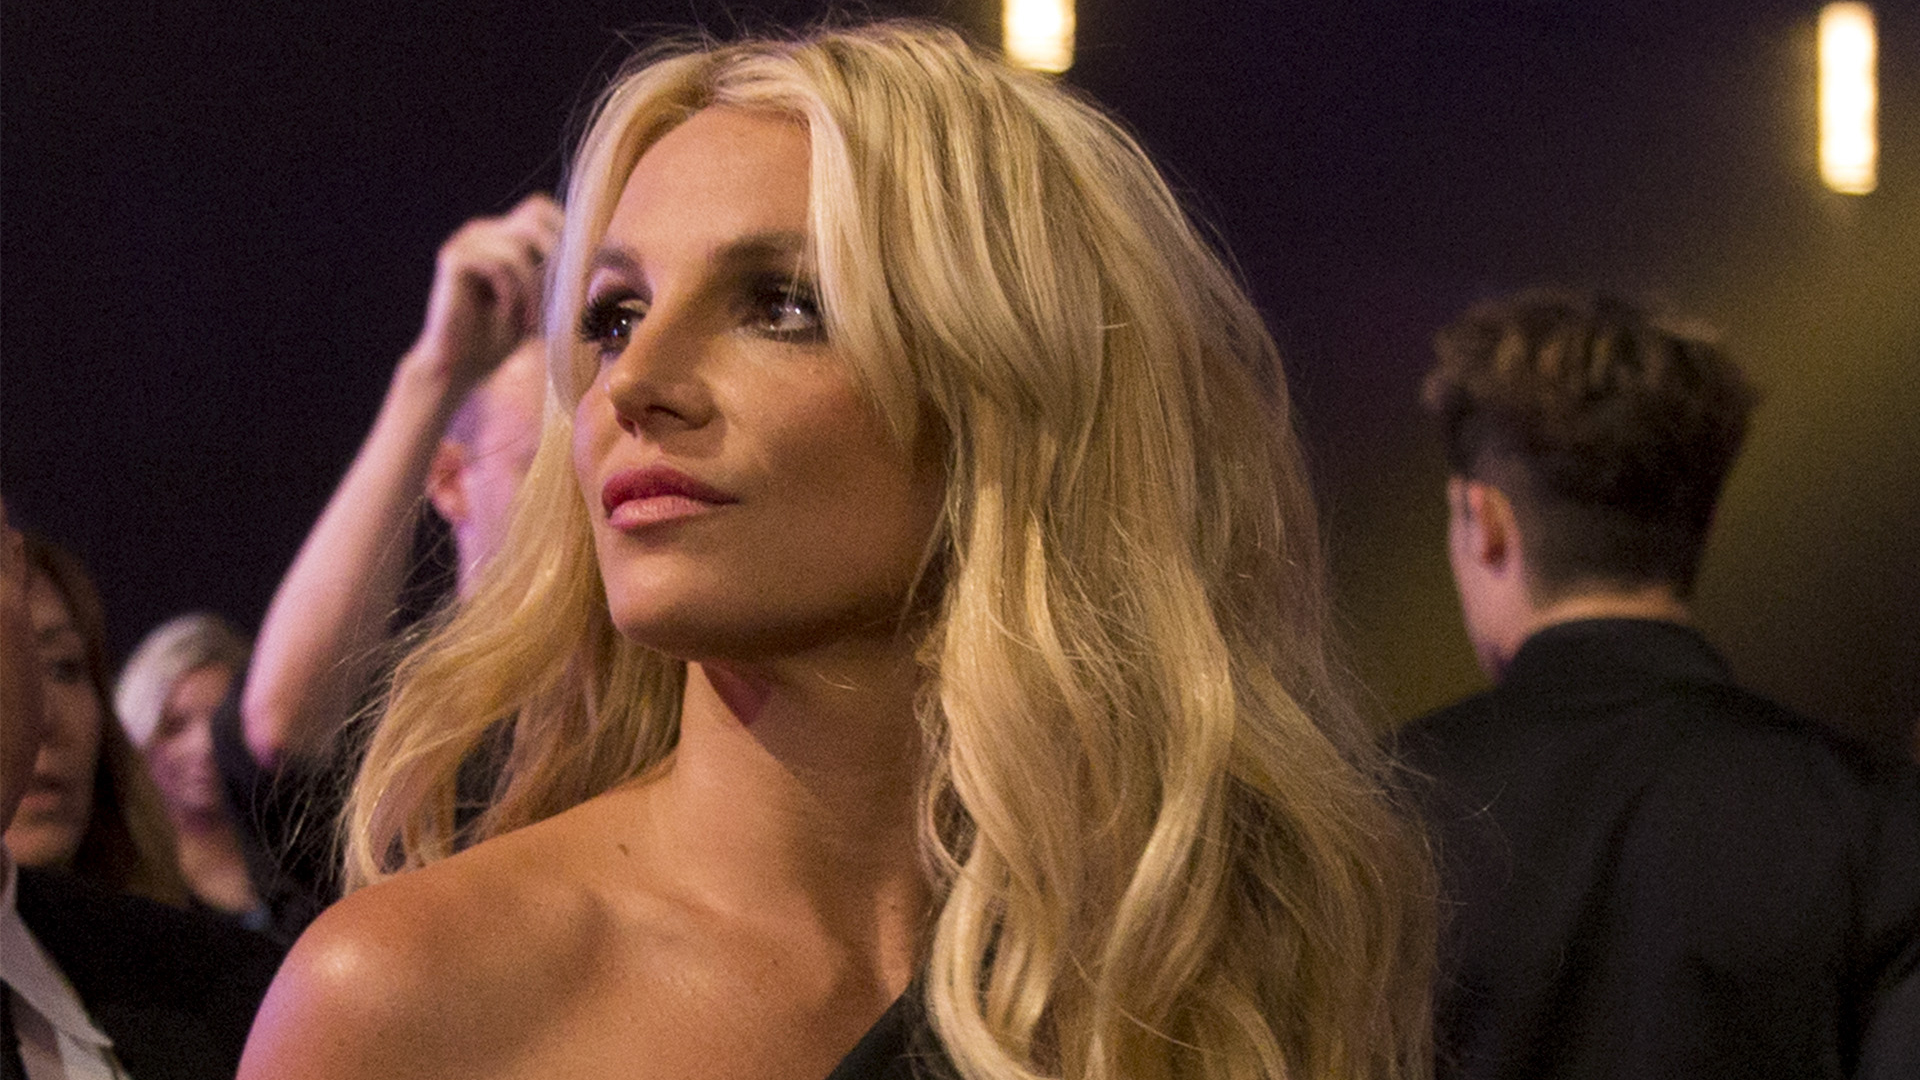 Britney Spears Has a Conspiracy Theory About Paparazzi Photos